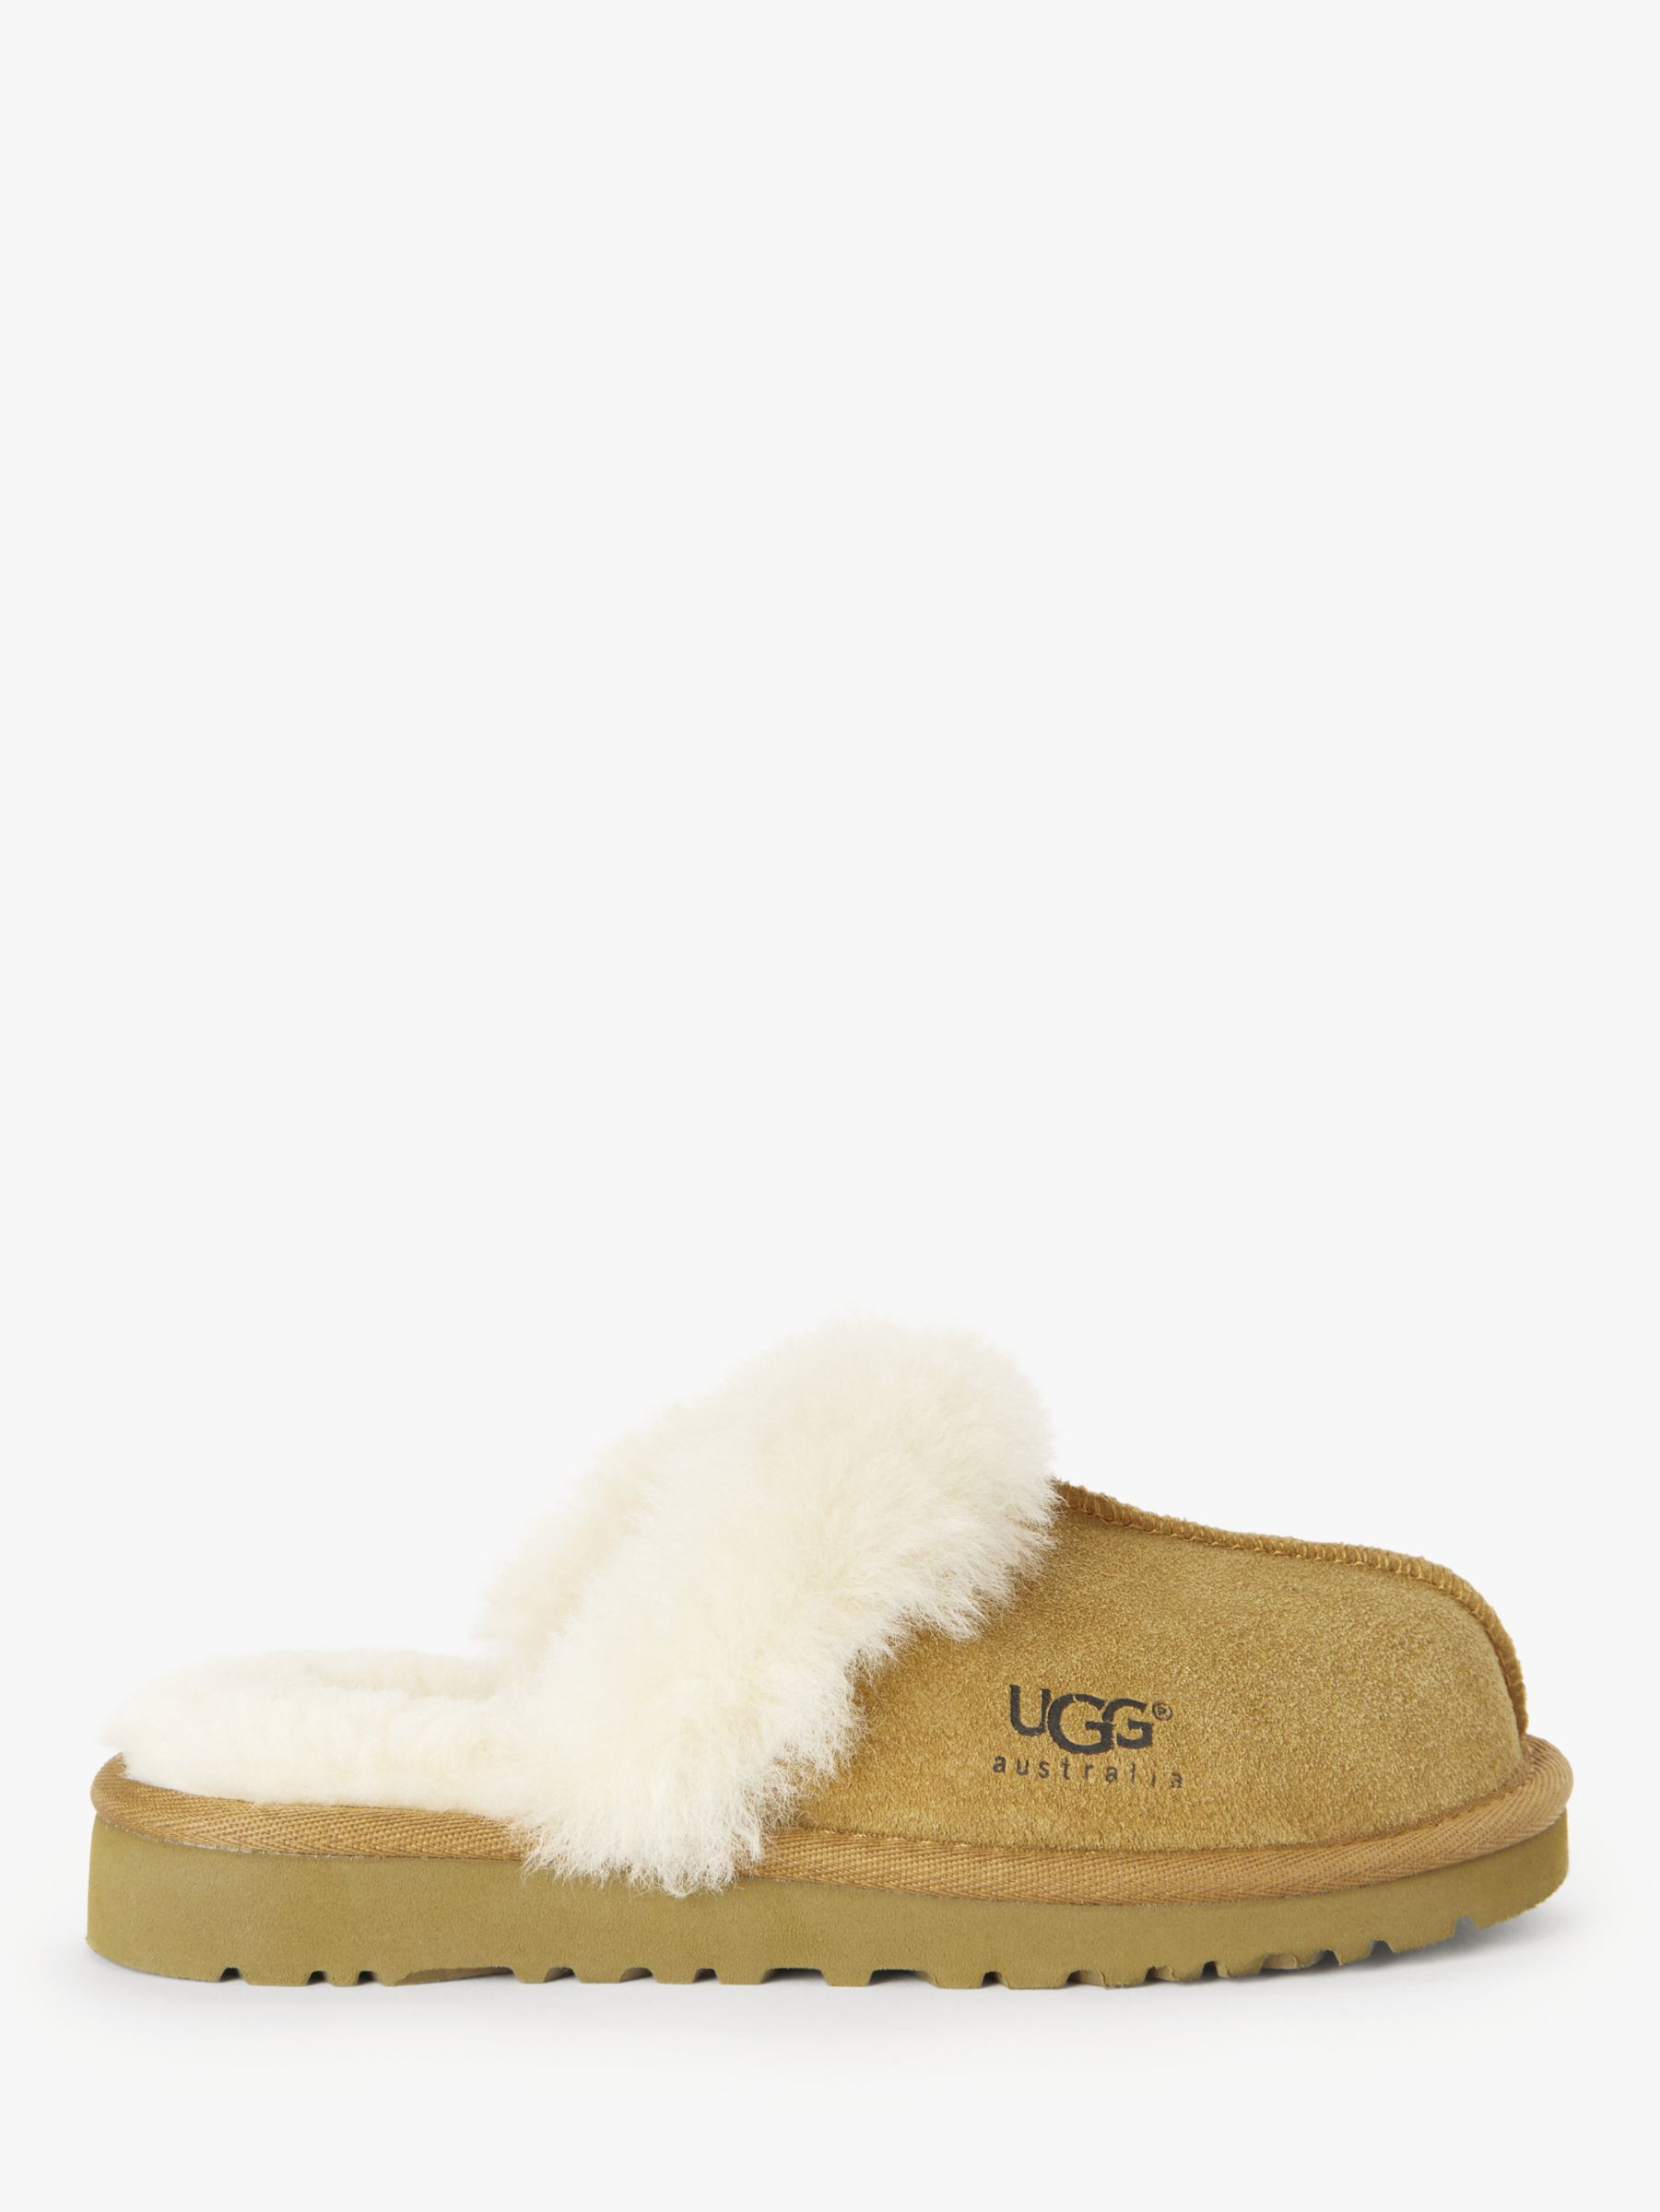 7df358f5b07 UGG Children's Cozy II Sheepskin Slippers at John Lewis & Partners